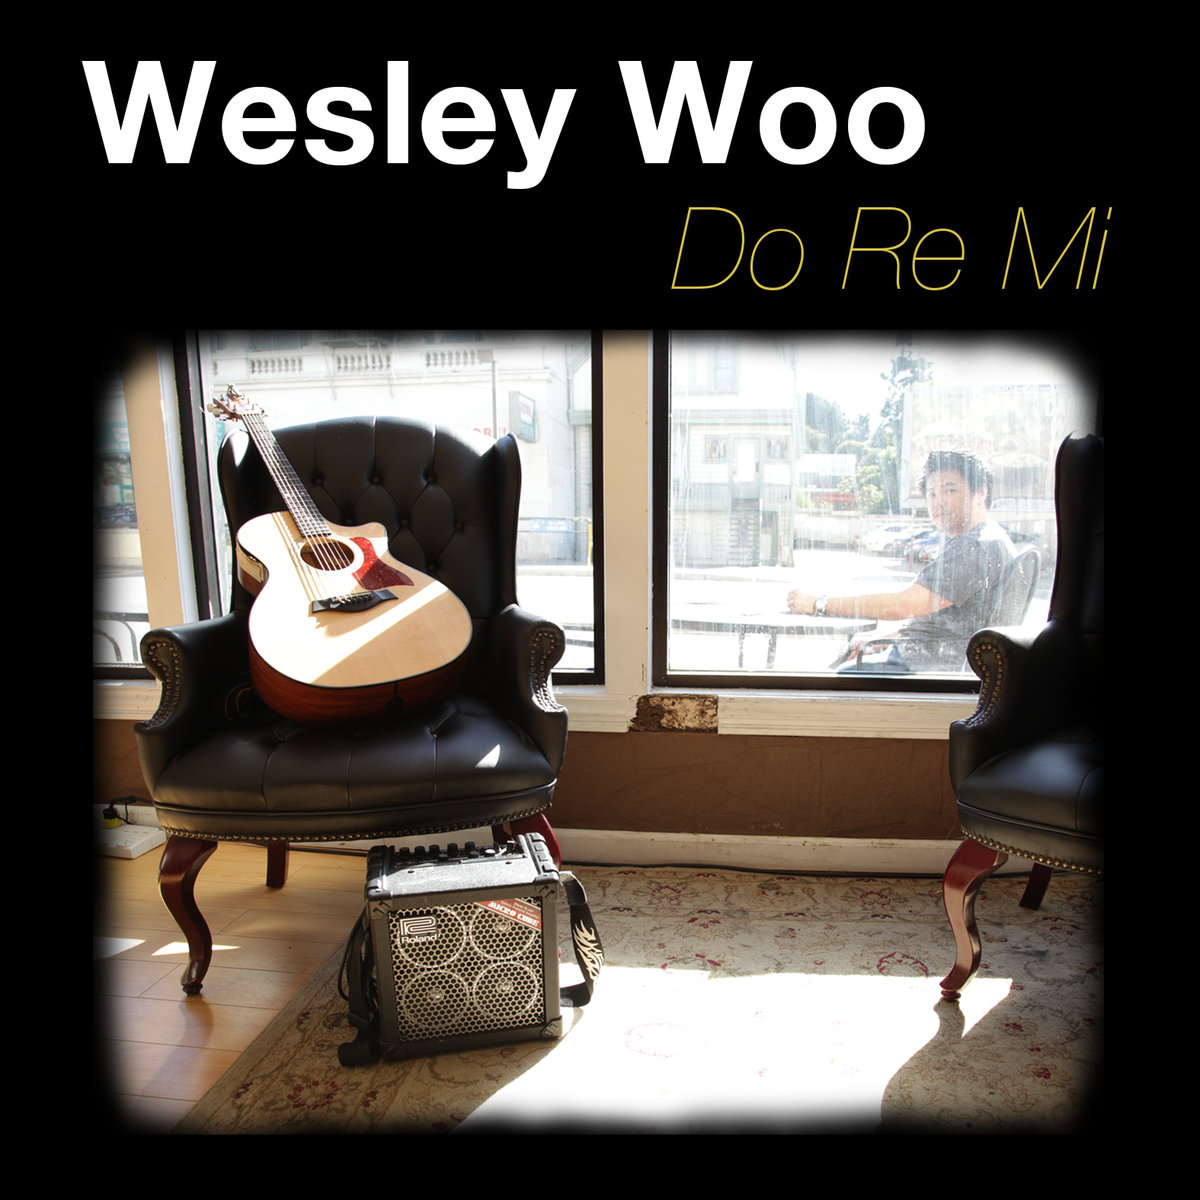 Wesley Woo - Not Broken @ 'Do Re Mi' album (11th ave records, 11th avenue records)